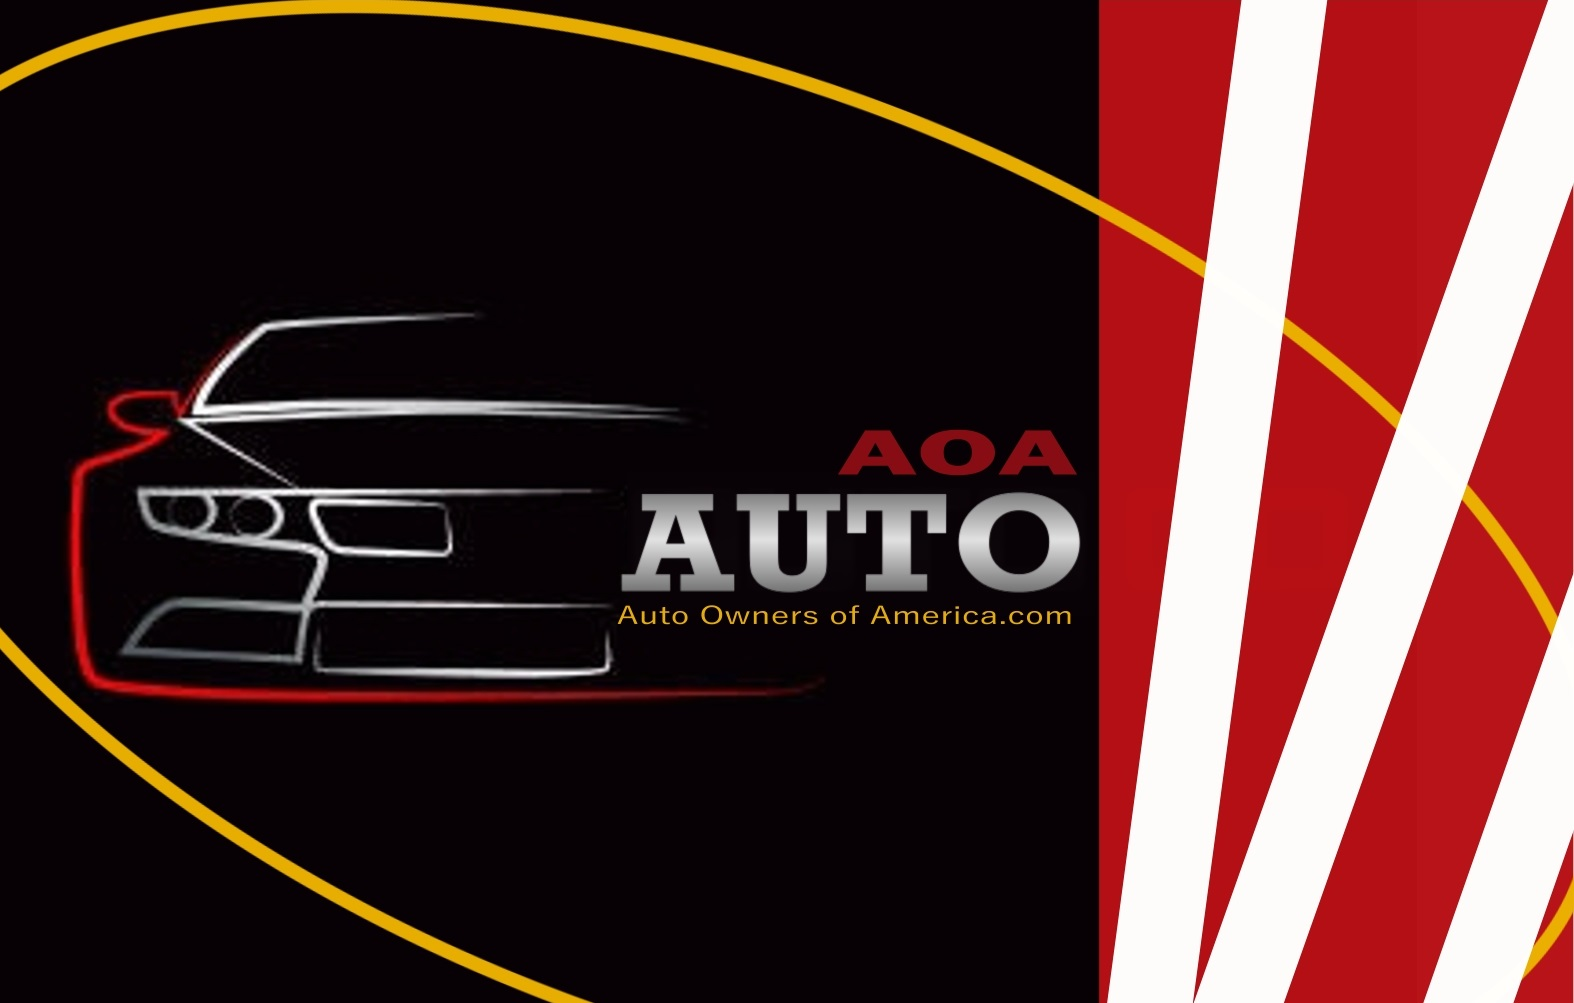 Auto Owners of America